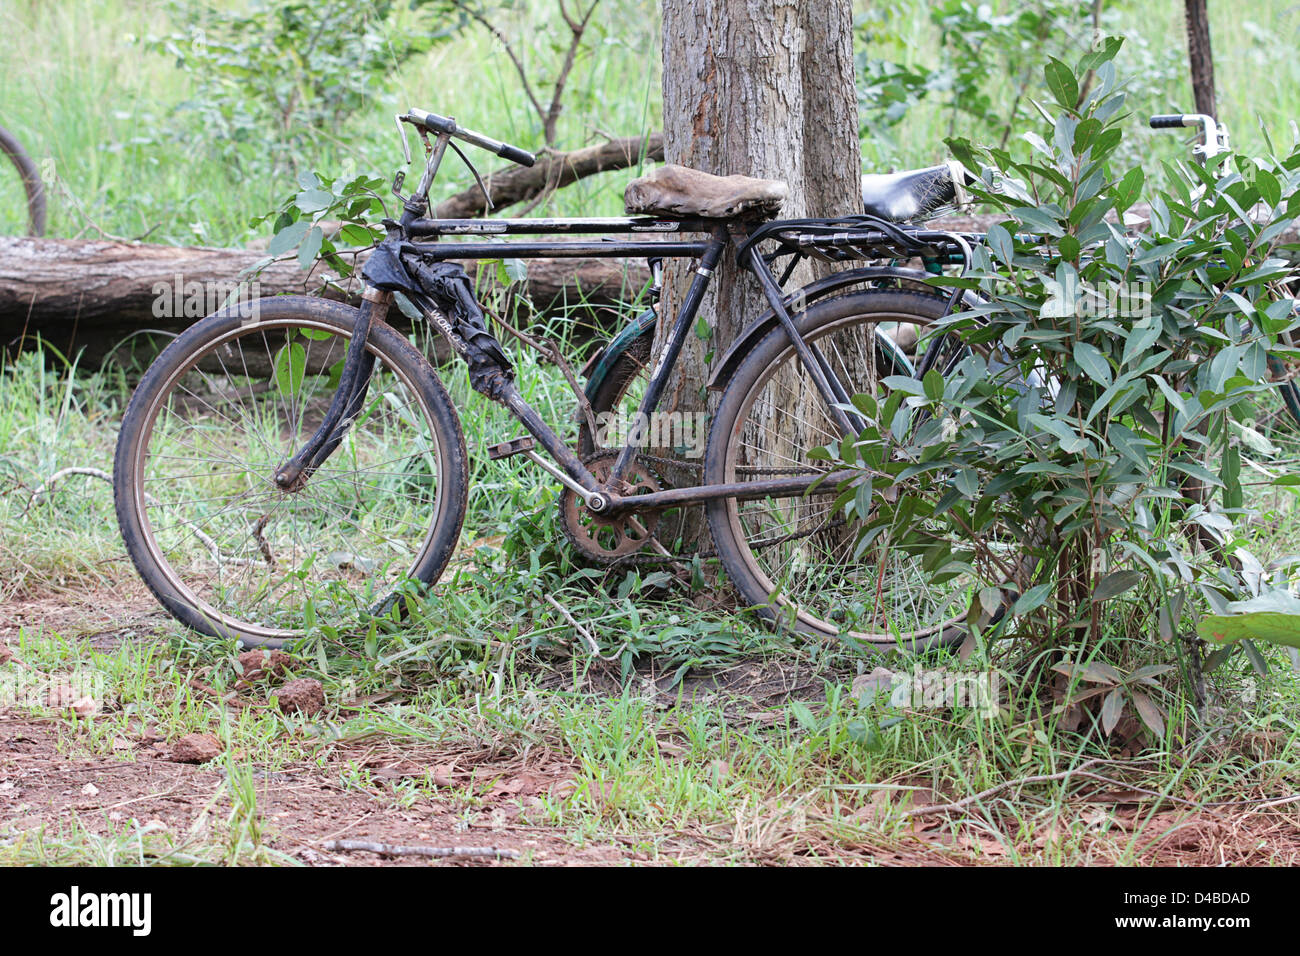 Old decrepit Zambian bicycles - Stock Image